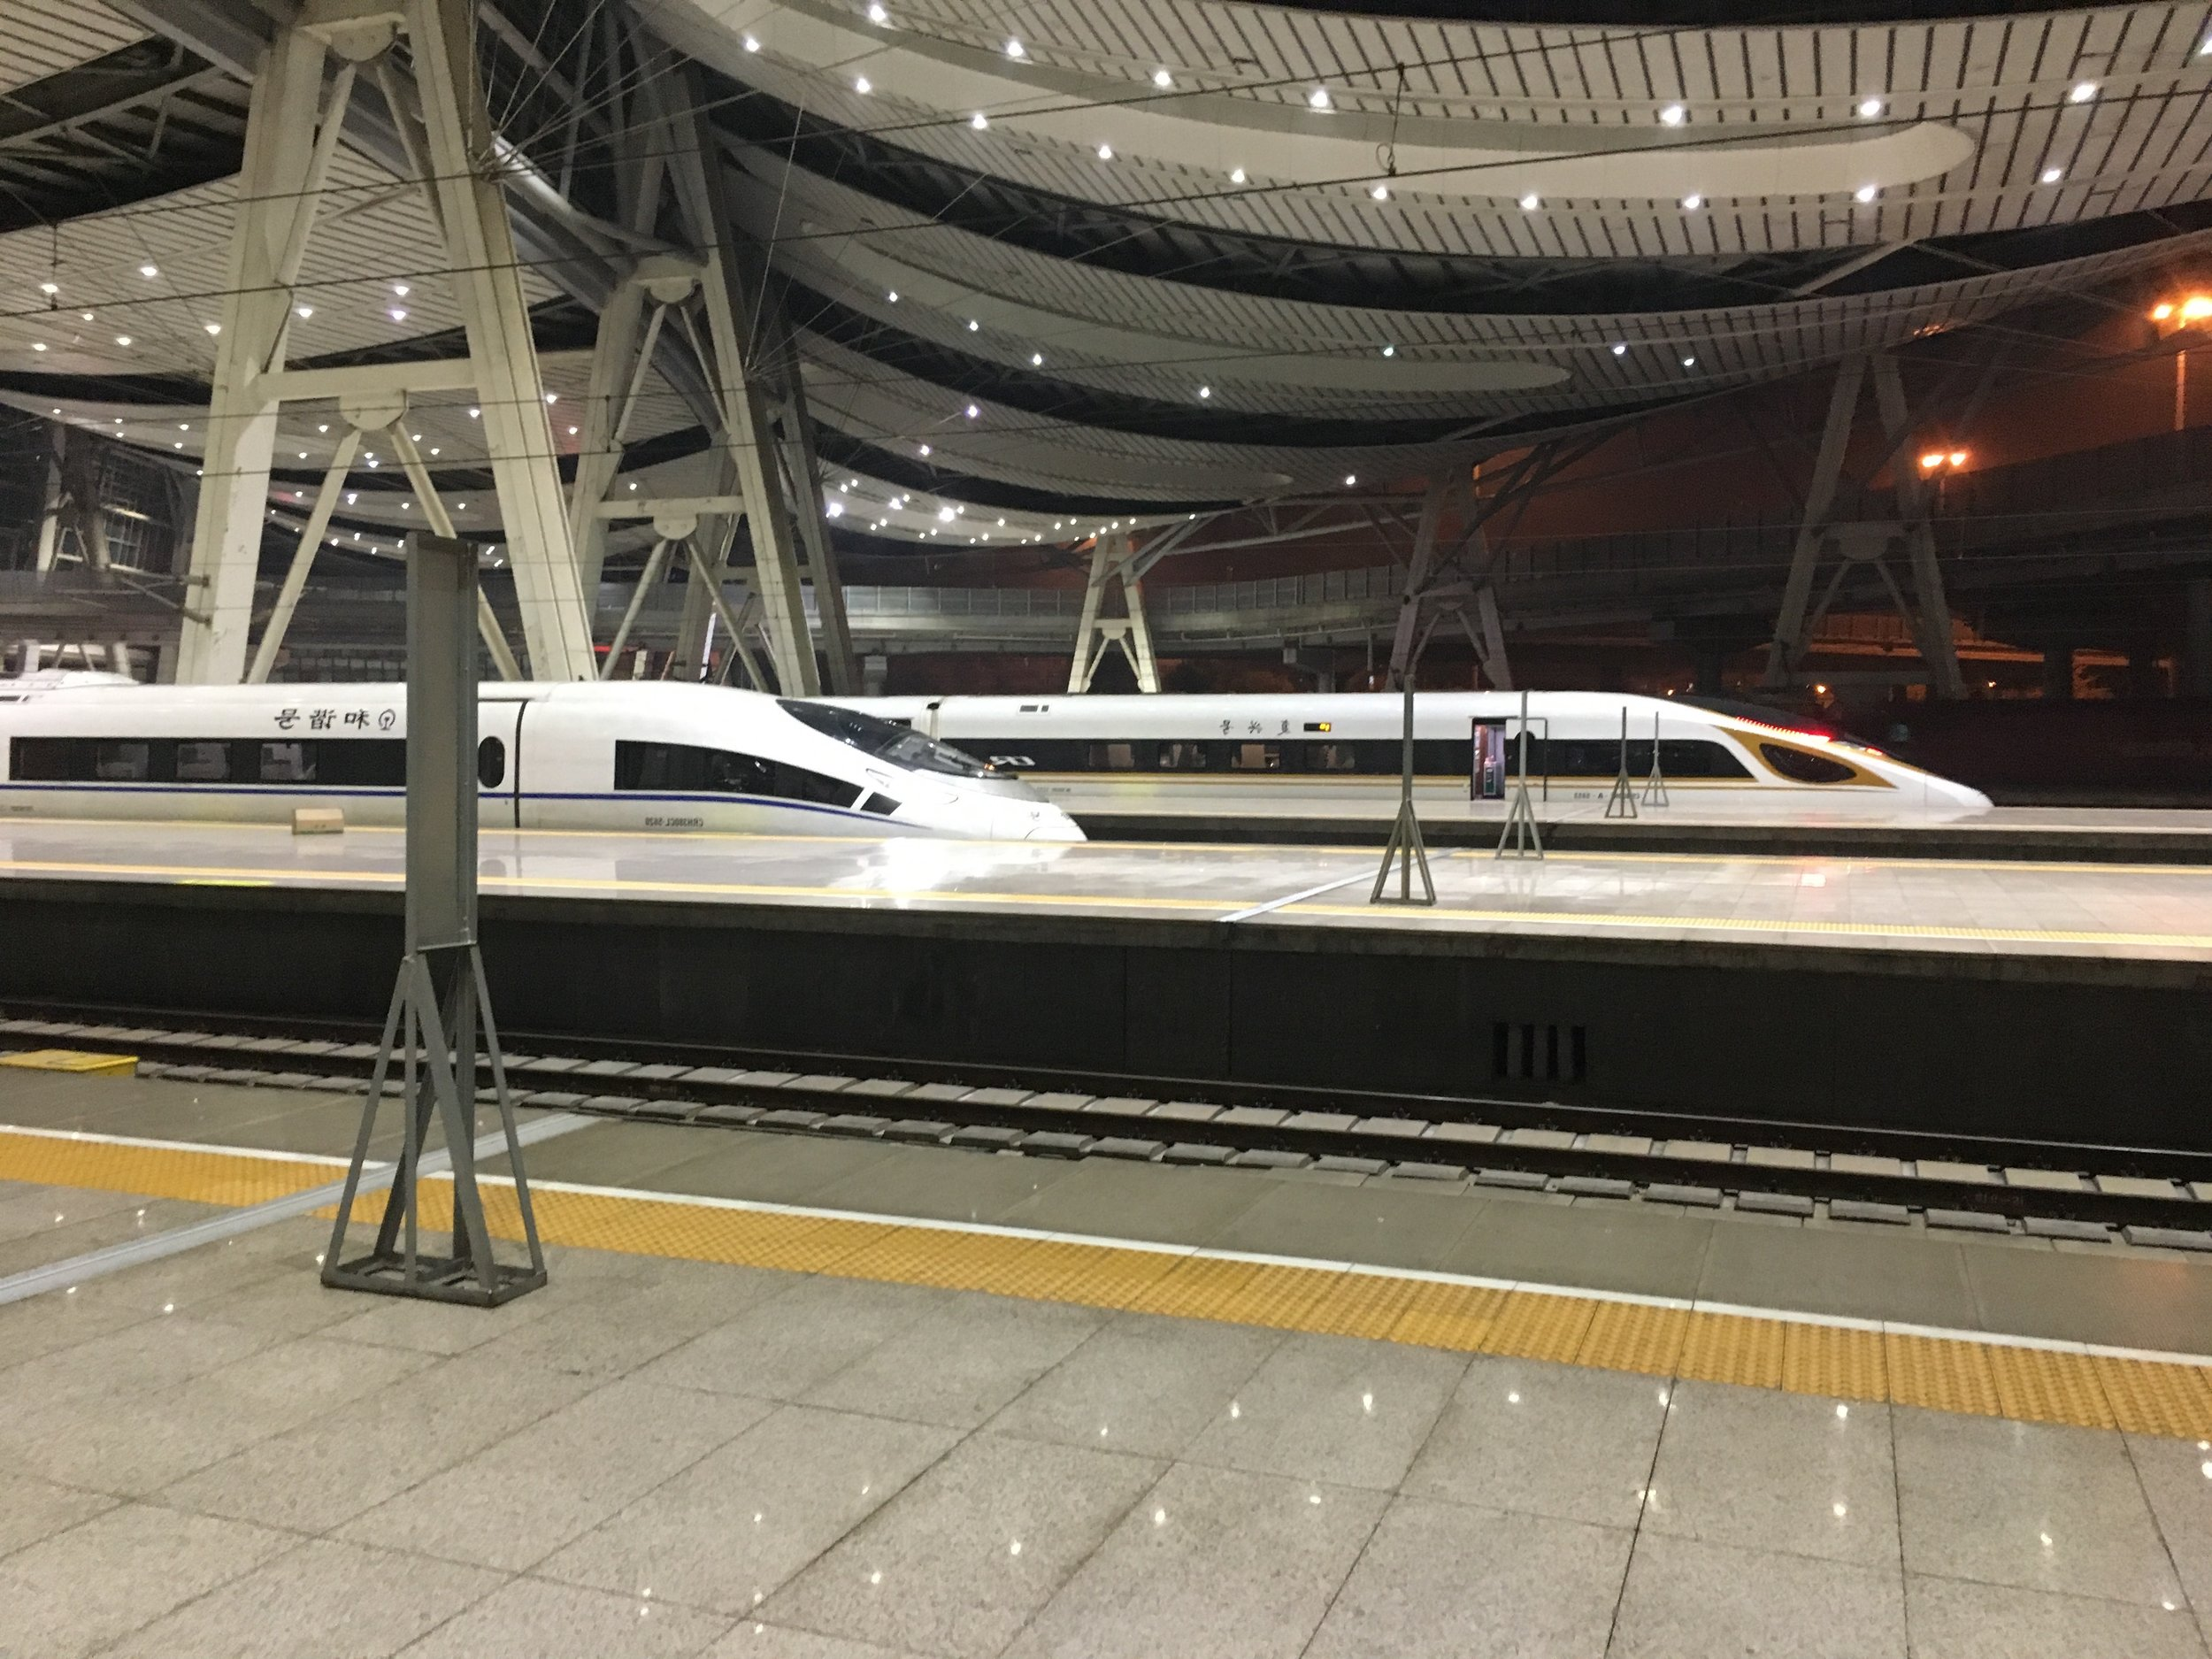 …with impressive High Speed Trains… - In just 10 years China has built 25.000+ kilometers of high speed rail networks with trains which are always on time and even come with flat bed seats.